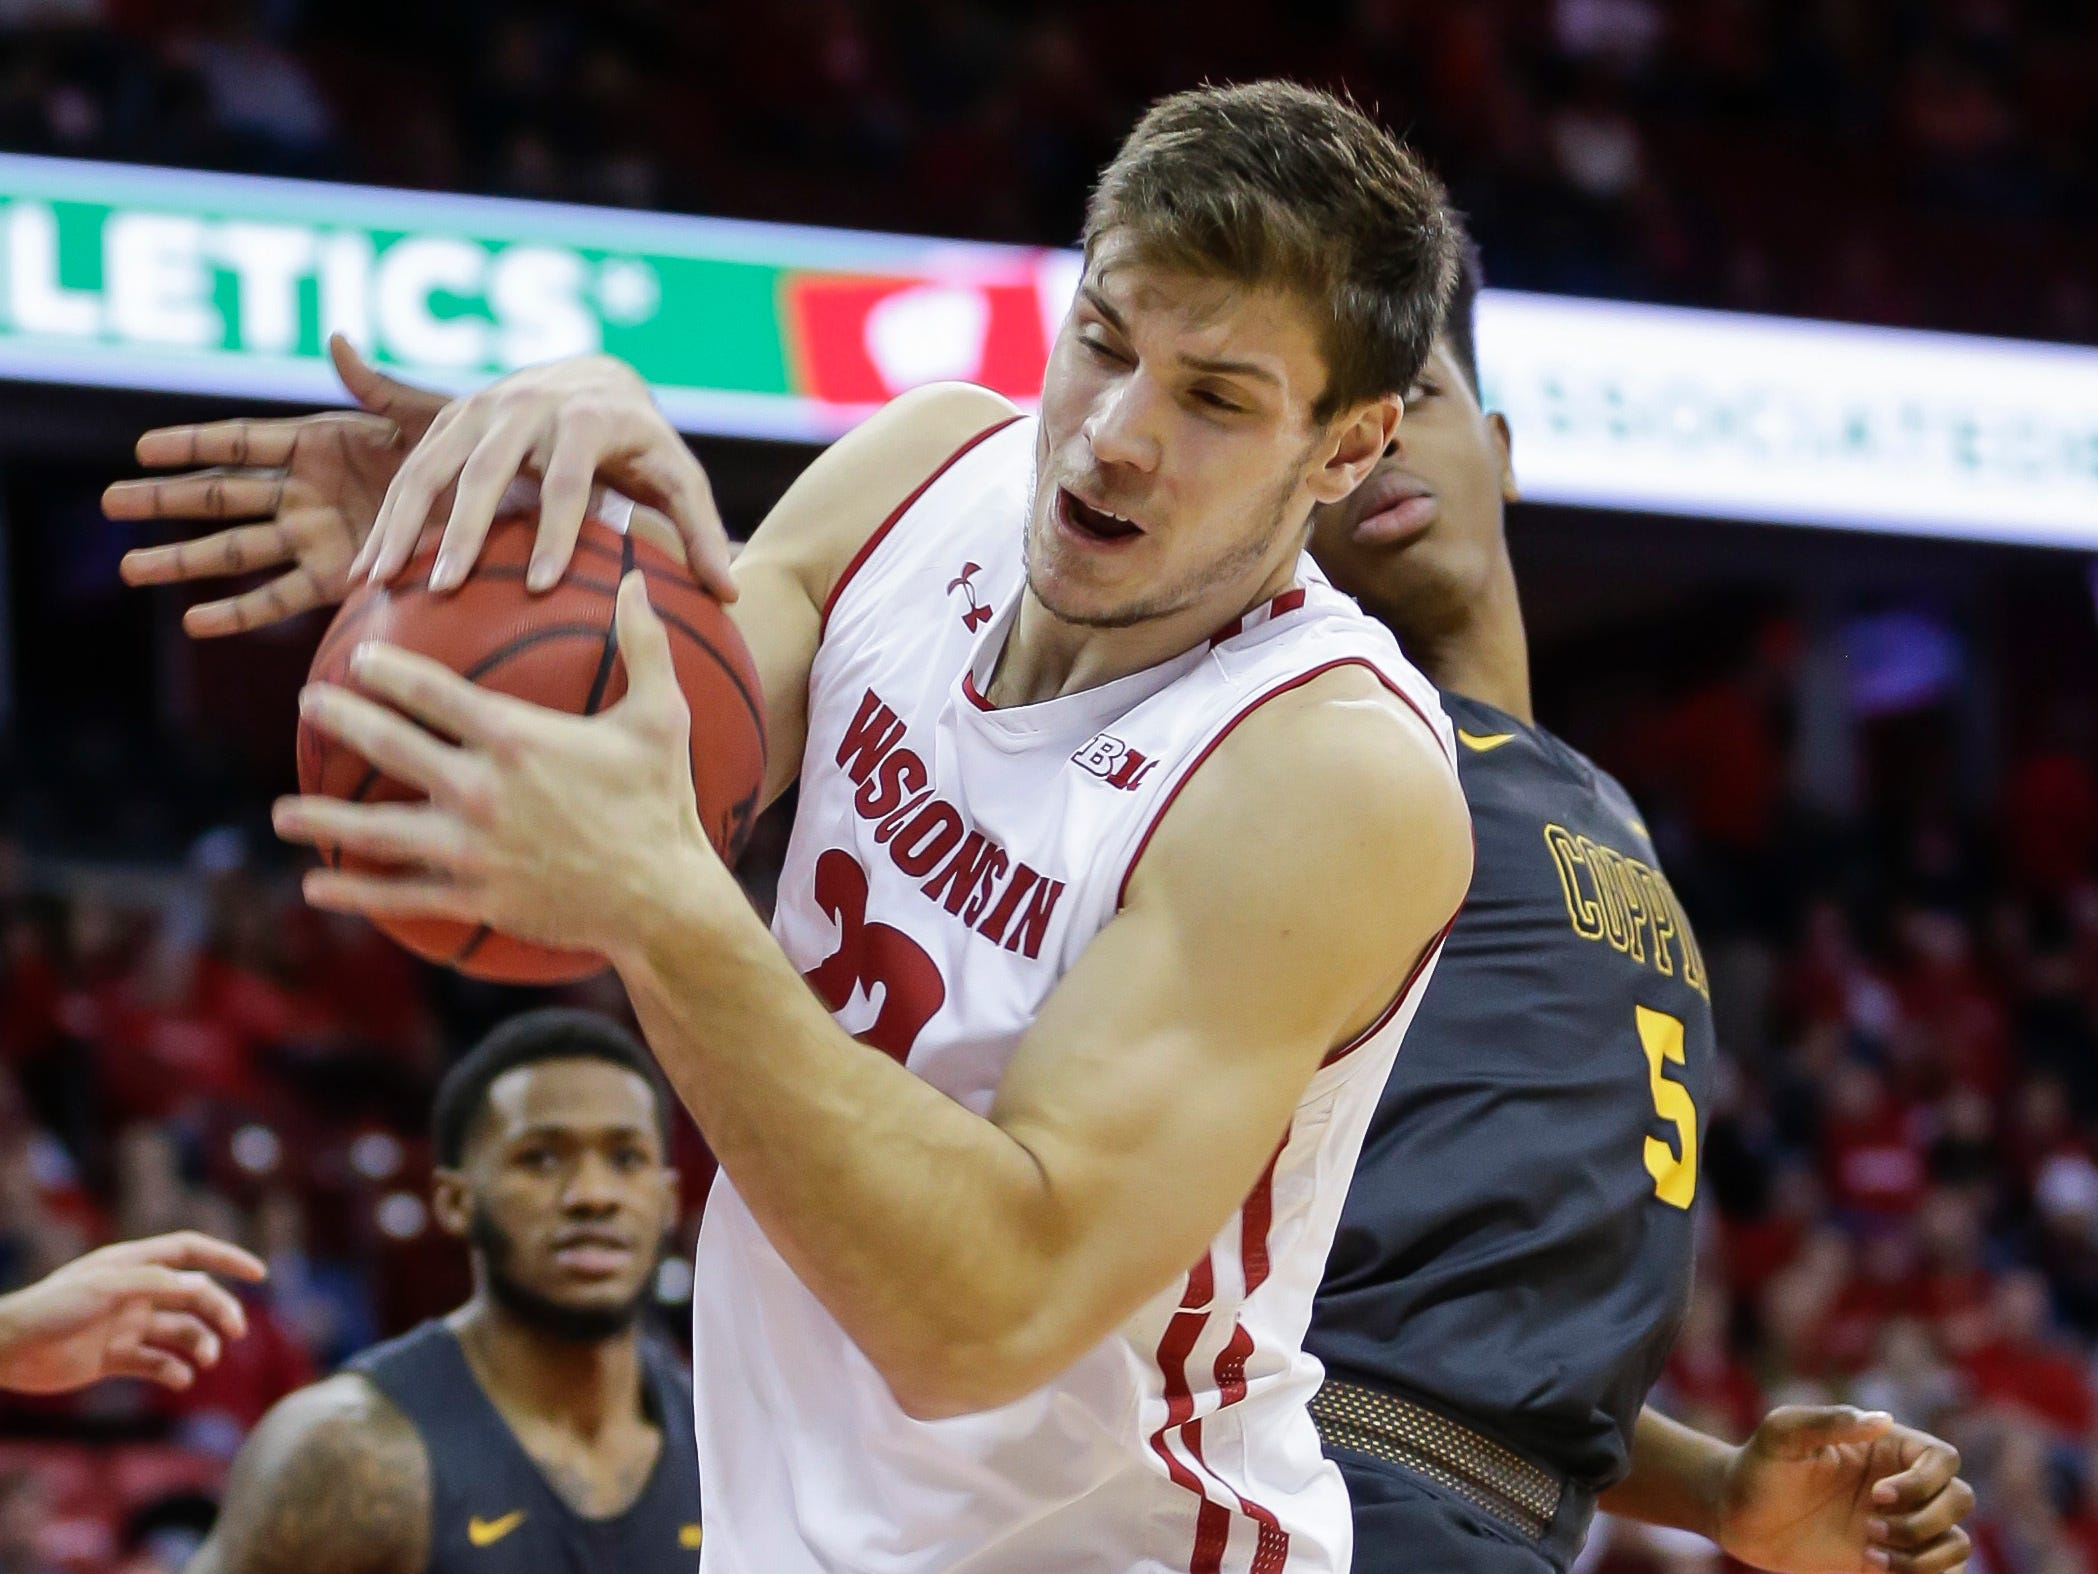 Wisconsin's Ethan Happ, left, grabs an offensive rebound against Coppin State's Cedric Council.